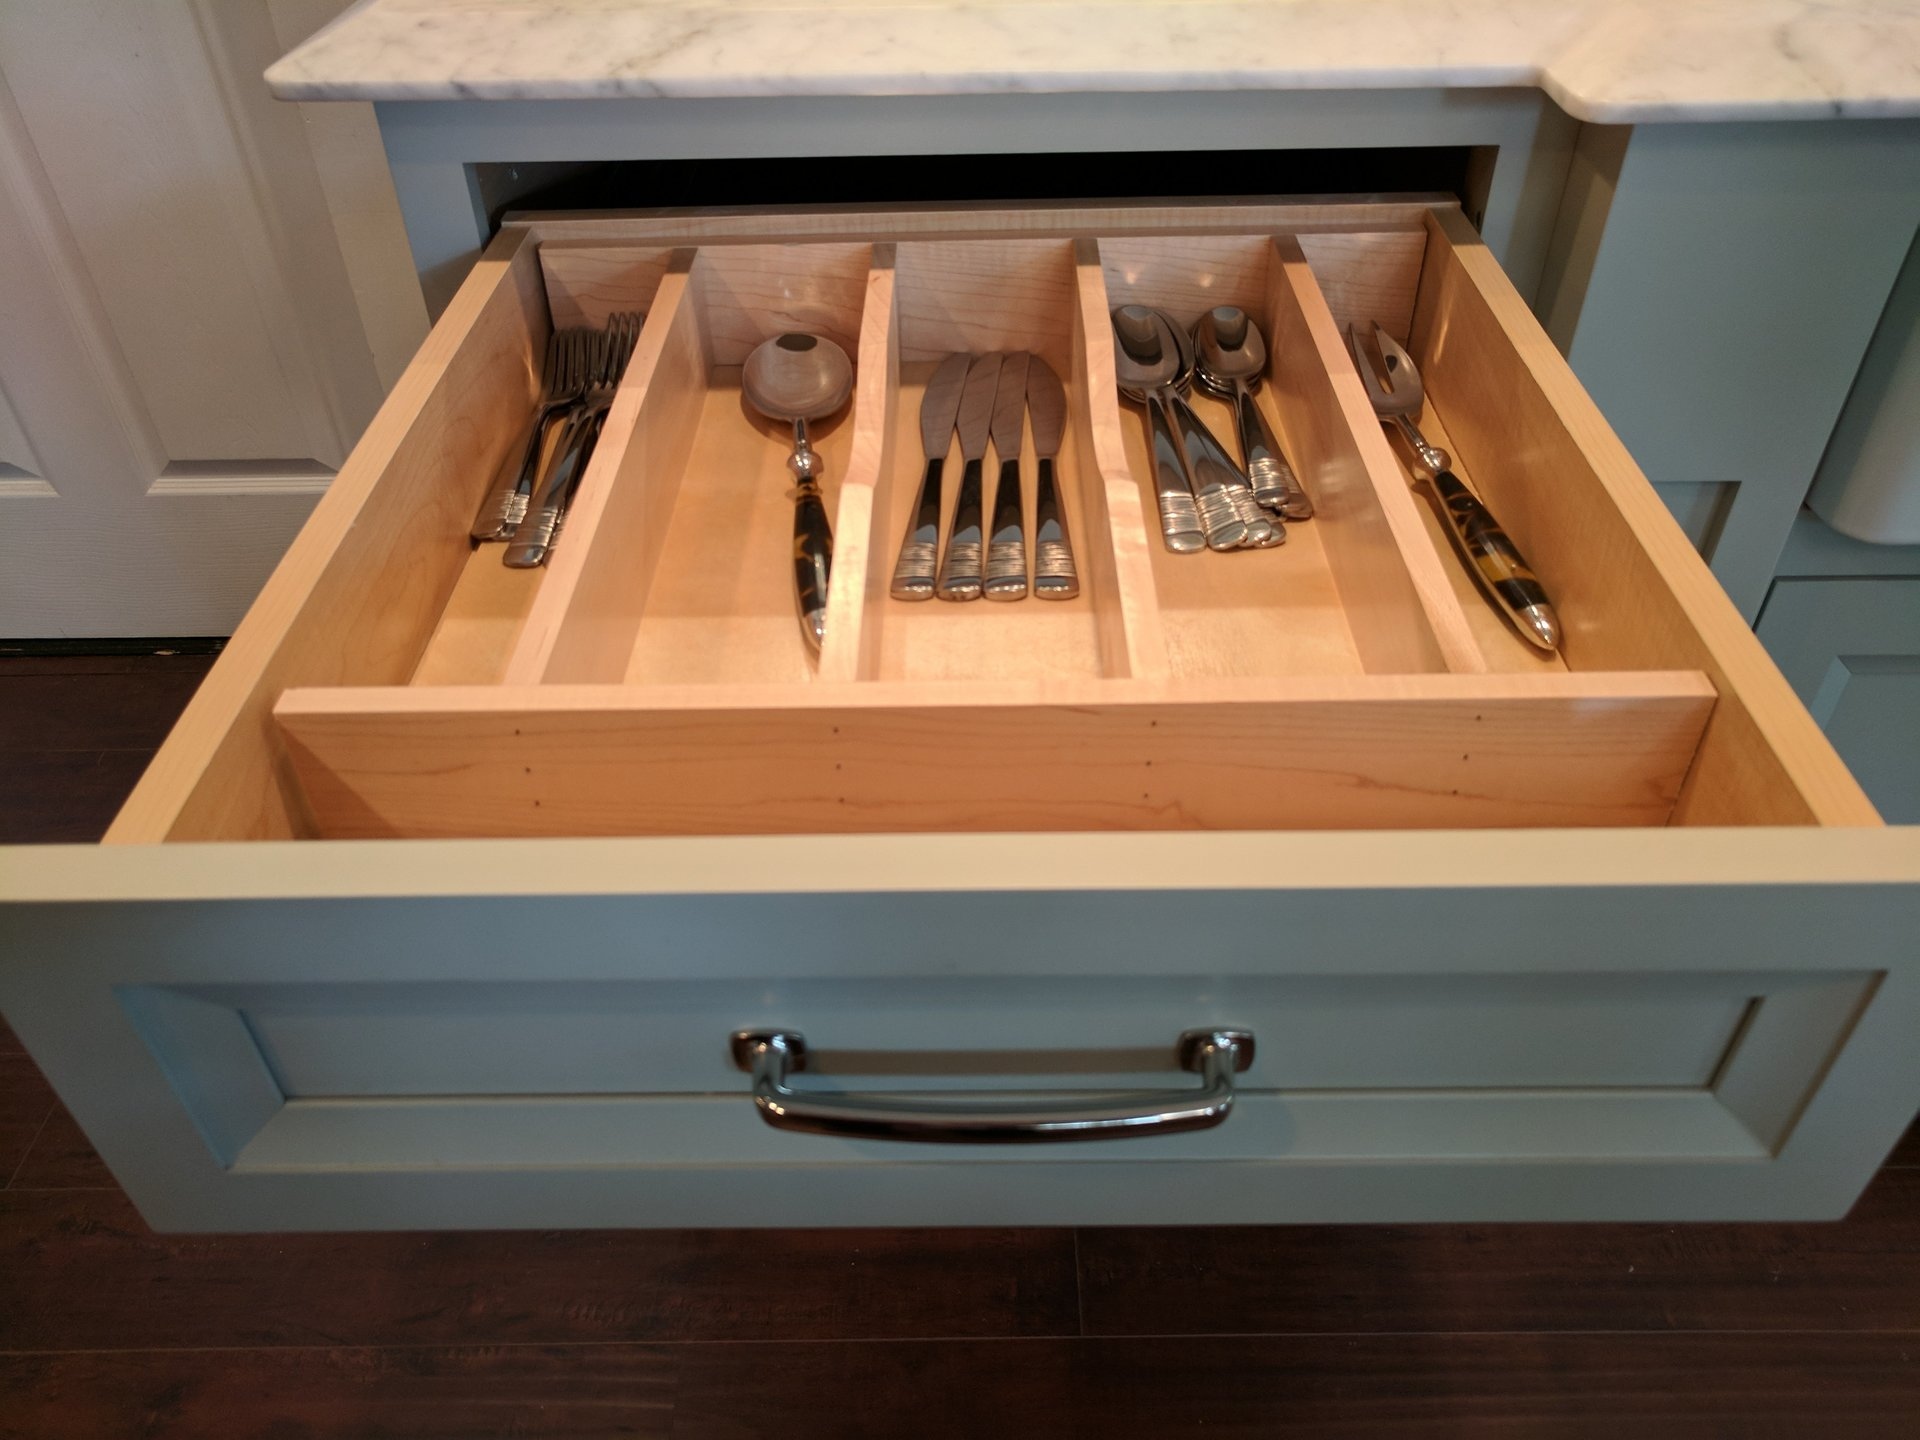 The Cabinet House Cabinetry Contractor